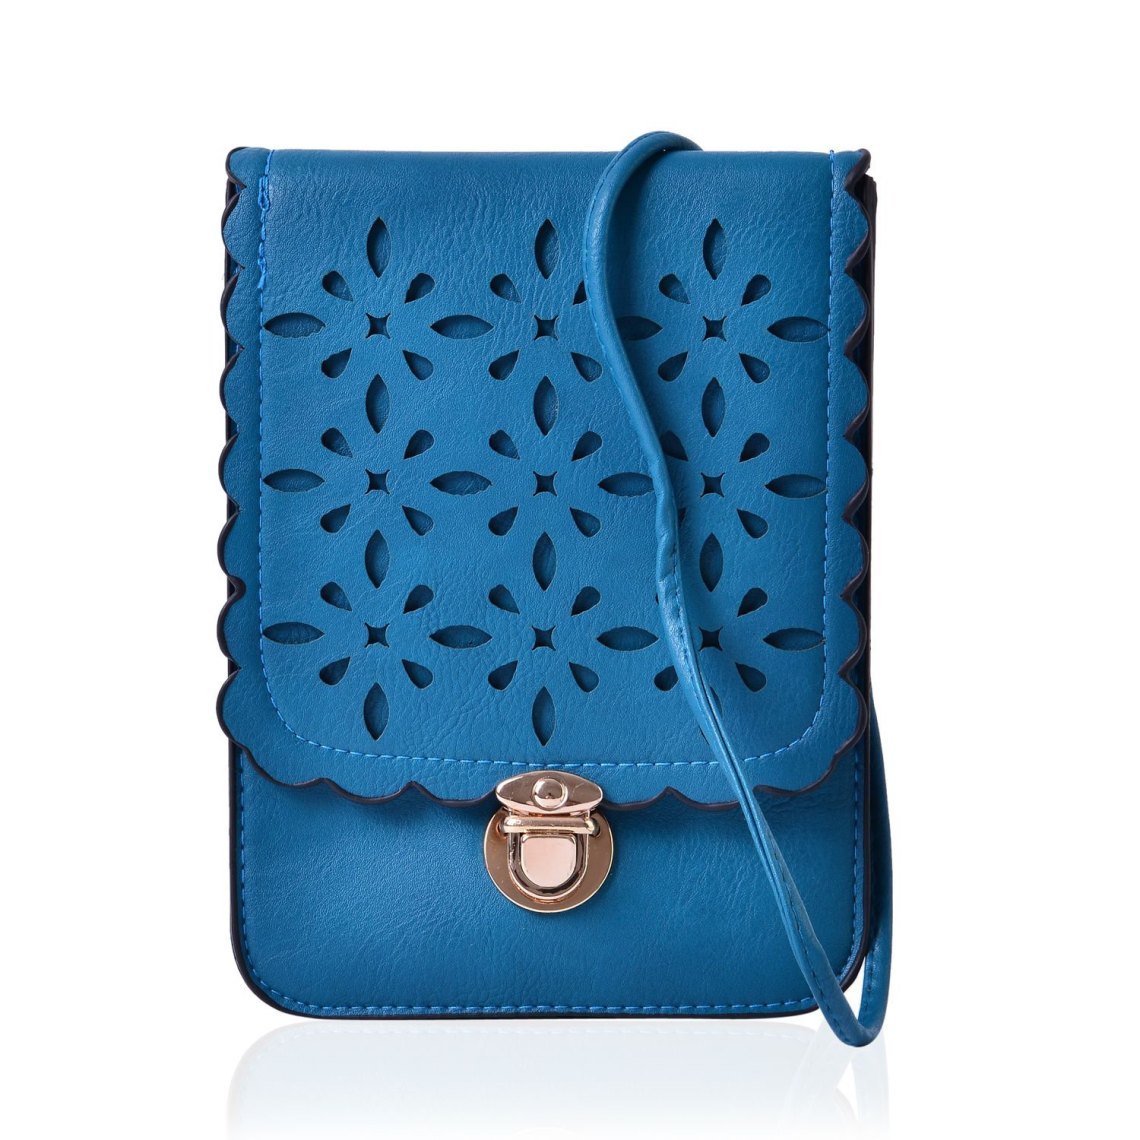 J Francis - Teal Faux Leather Crossbody Bag